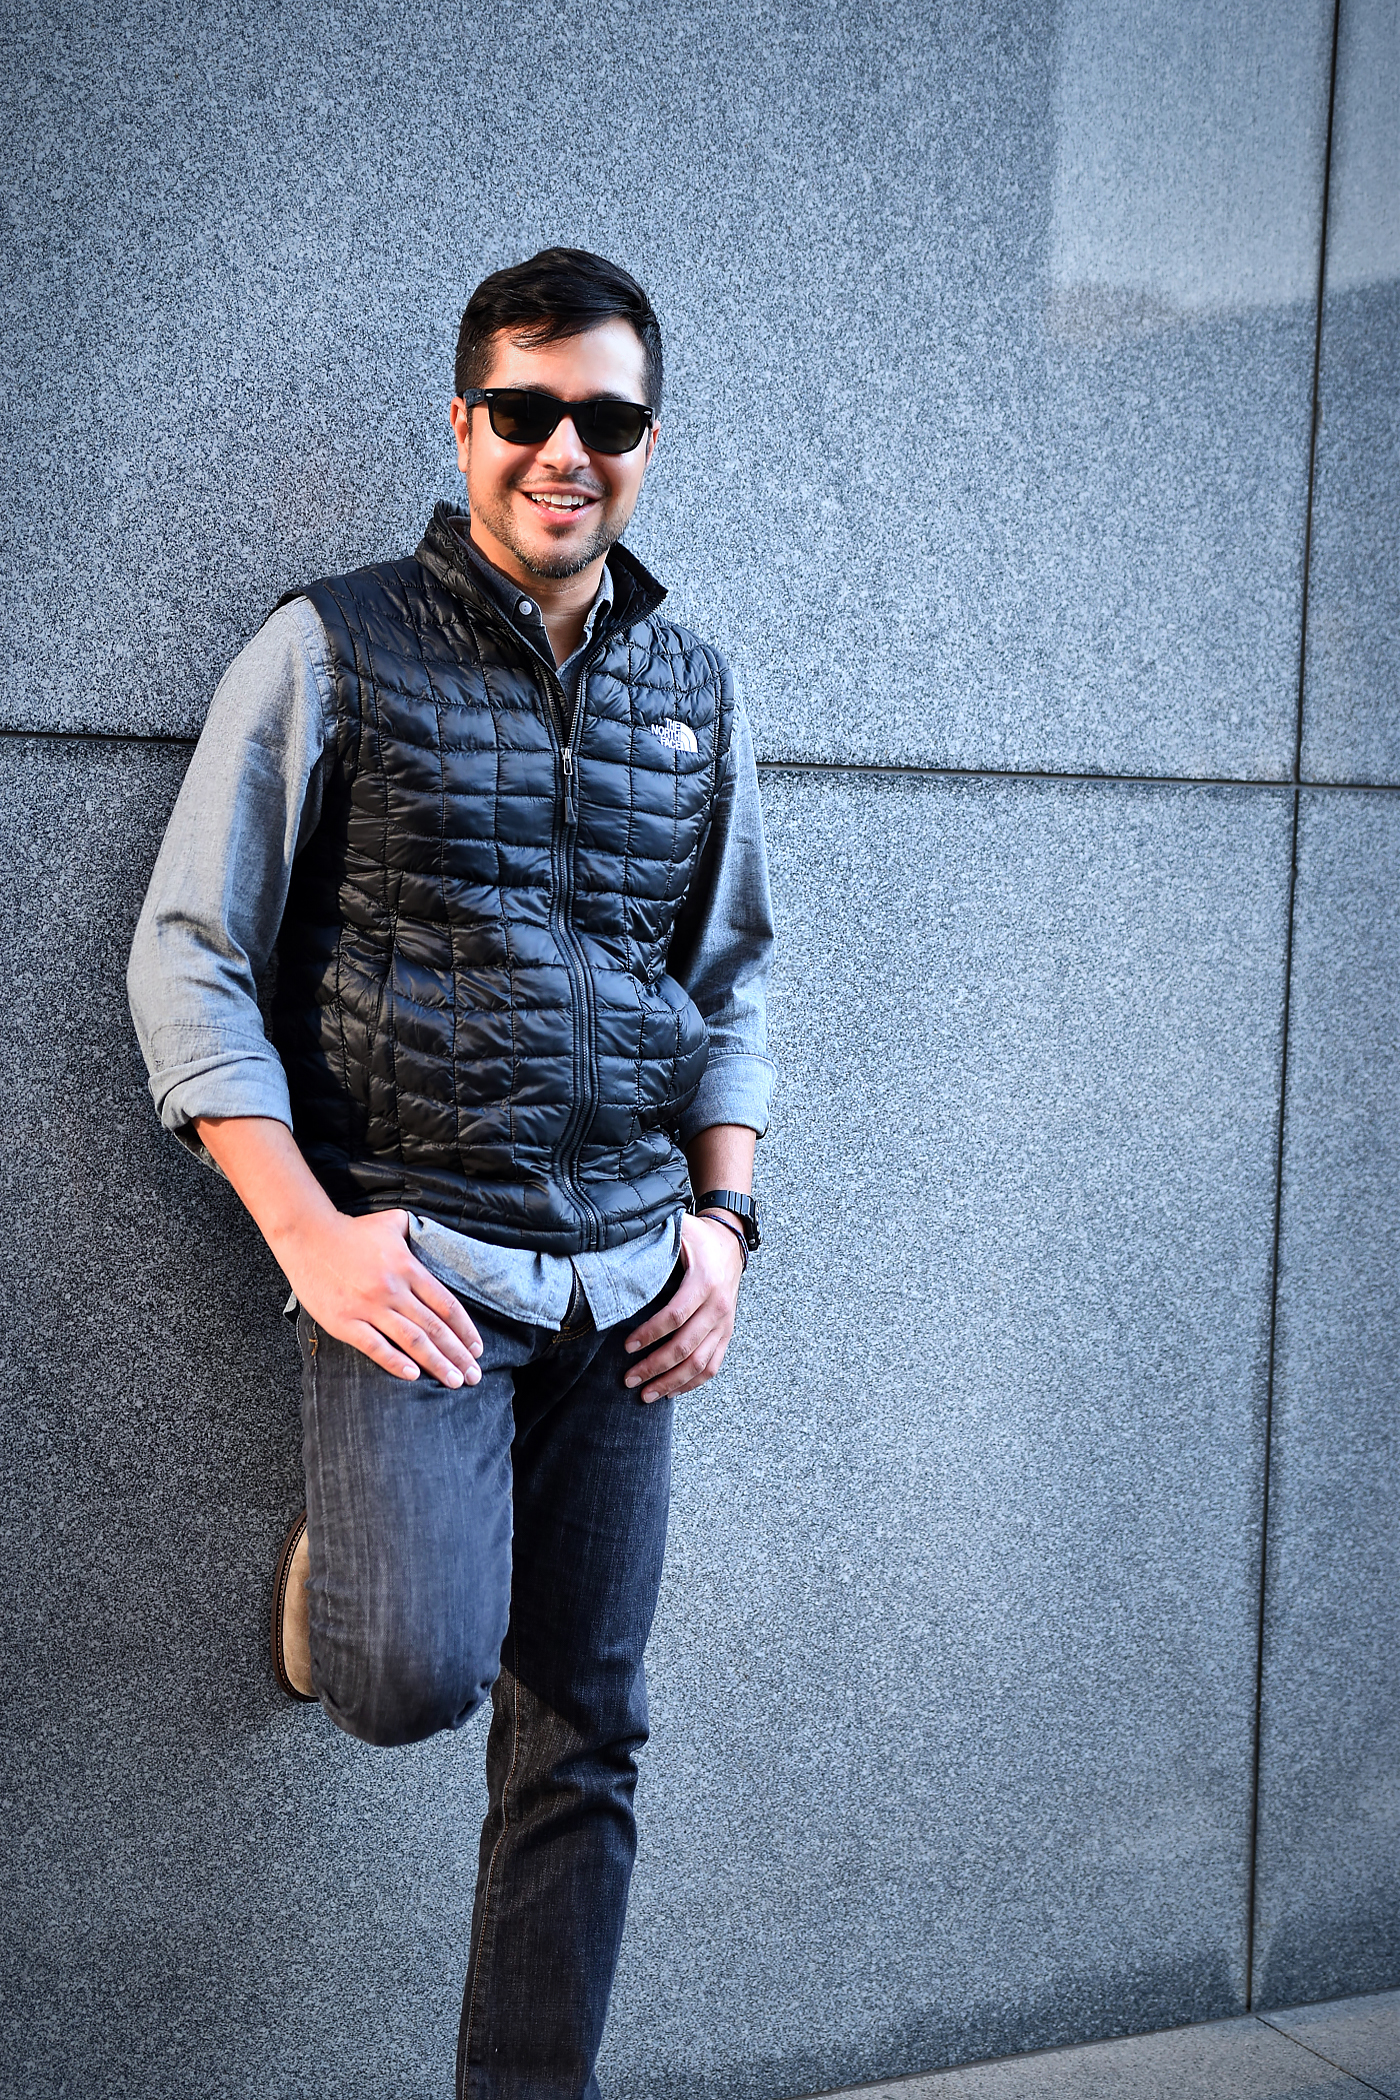 fashion-jackson-nordstrom-mens-style-fall-outfit-north-face-vest